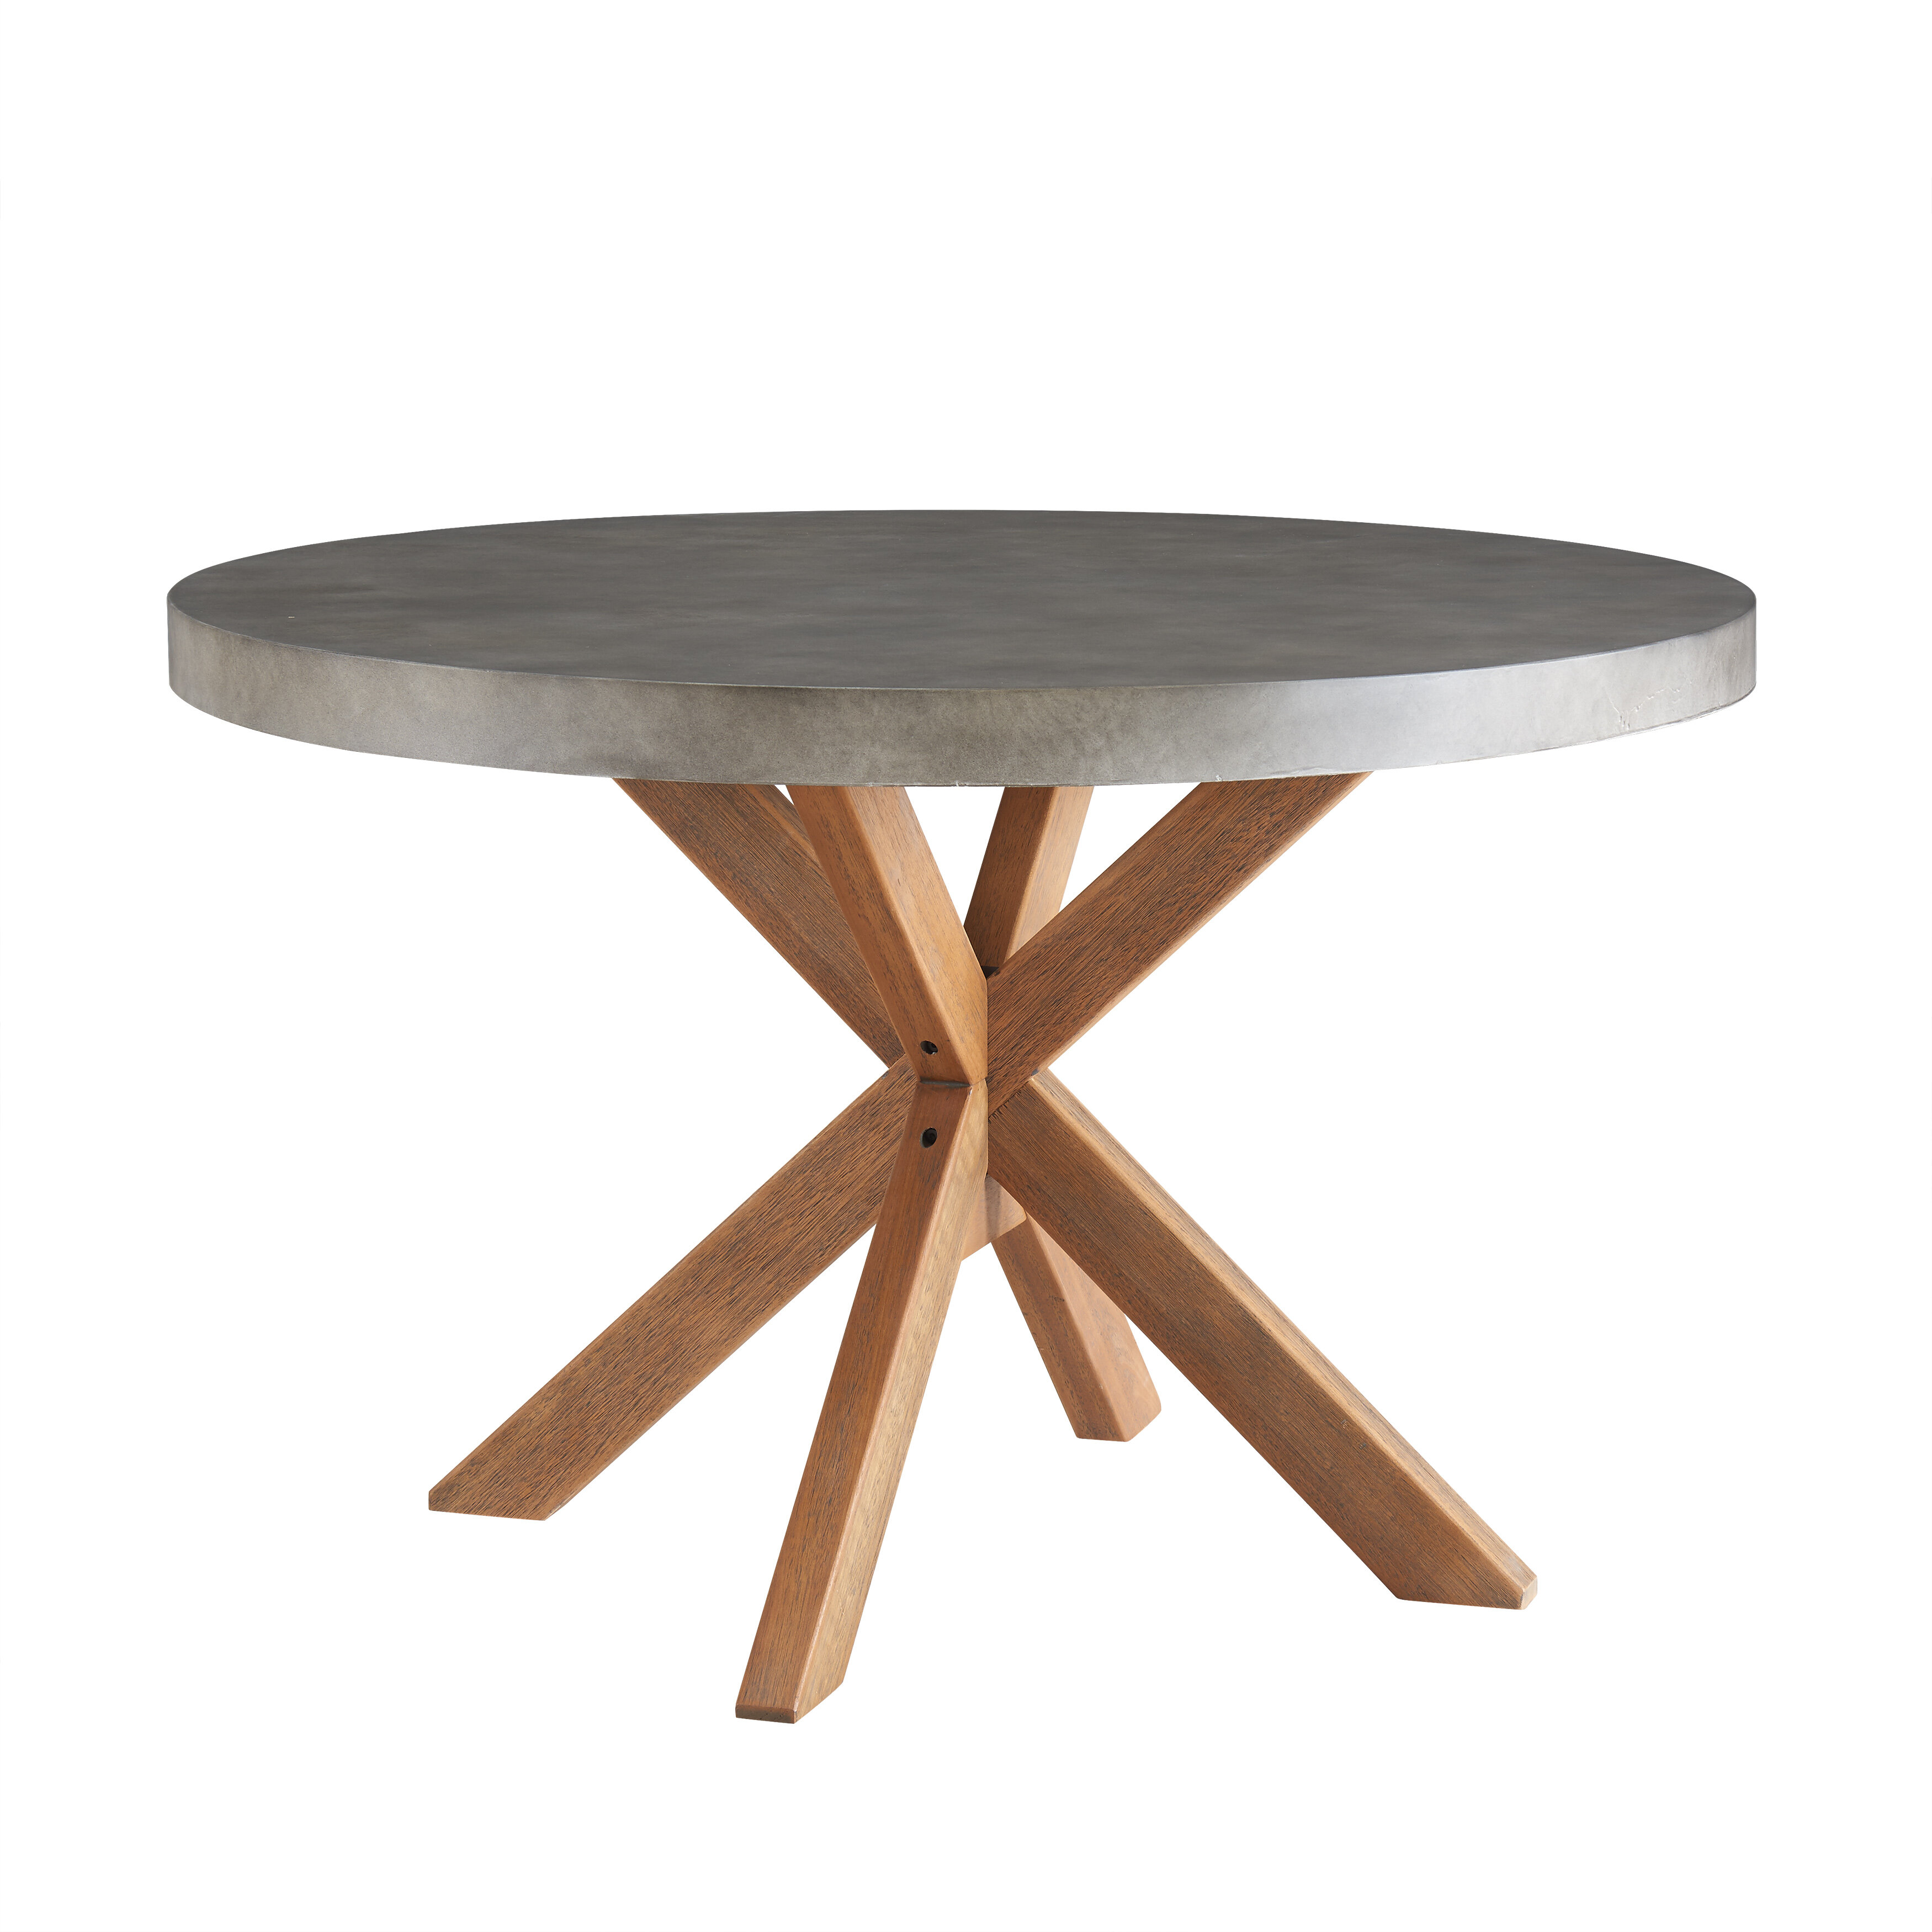 Awesome Mancini Stone Concrete Dining Table Gamerscity Chair Design For Home Gamerscityorg